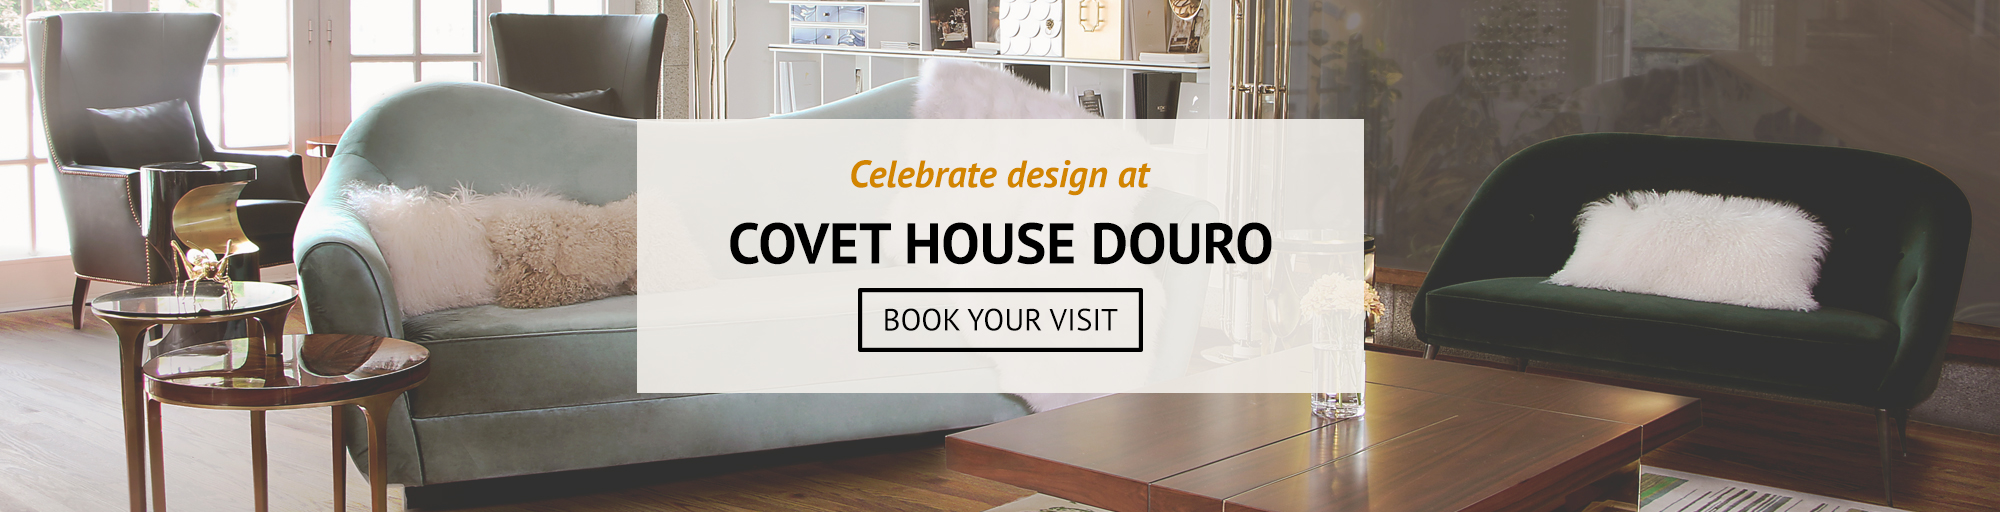 interior design Covet House: The Ultimate Experience For Any Interior Design Lover  49191C53D9A9A813E59898F0667FBE1D85F069FE58BFE8D88B pimgpsh fullsize distr